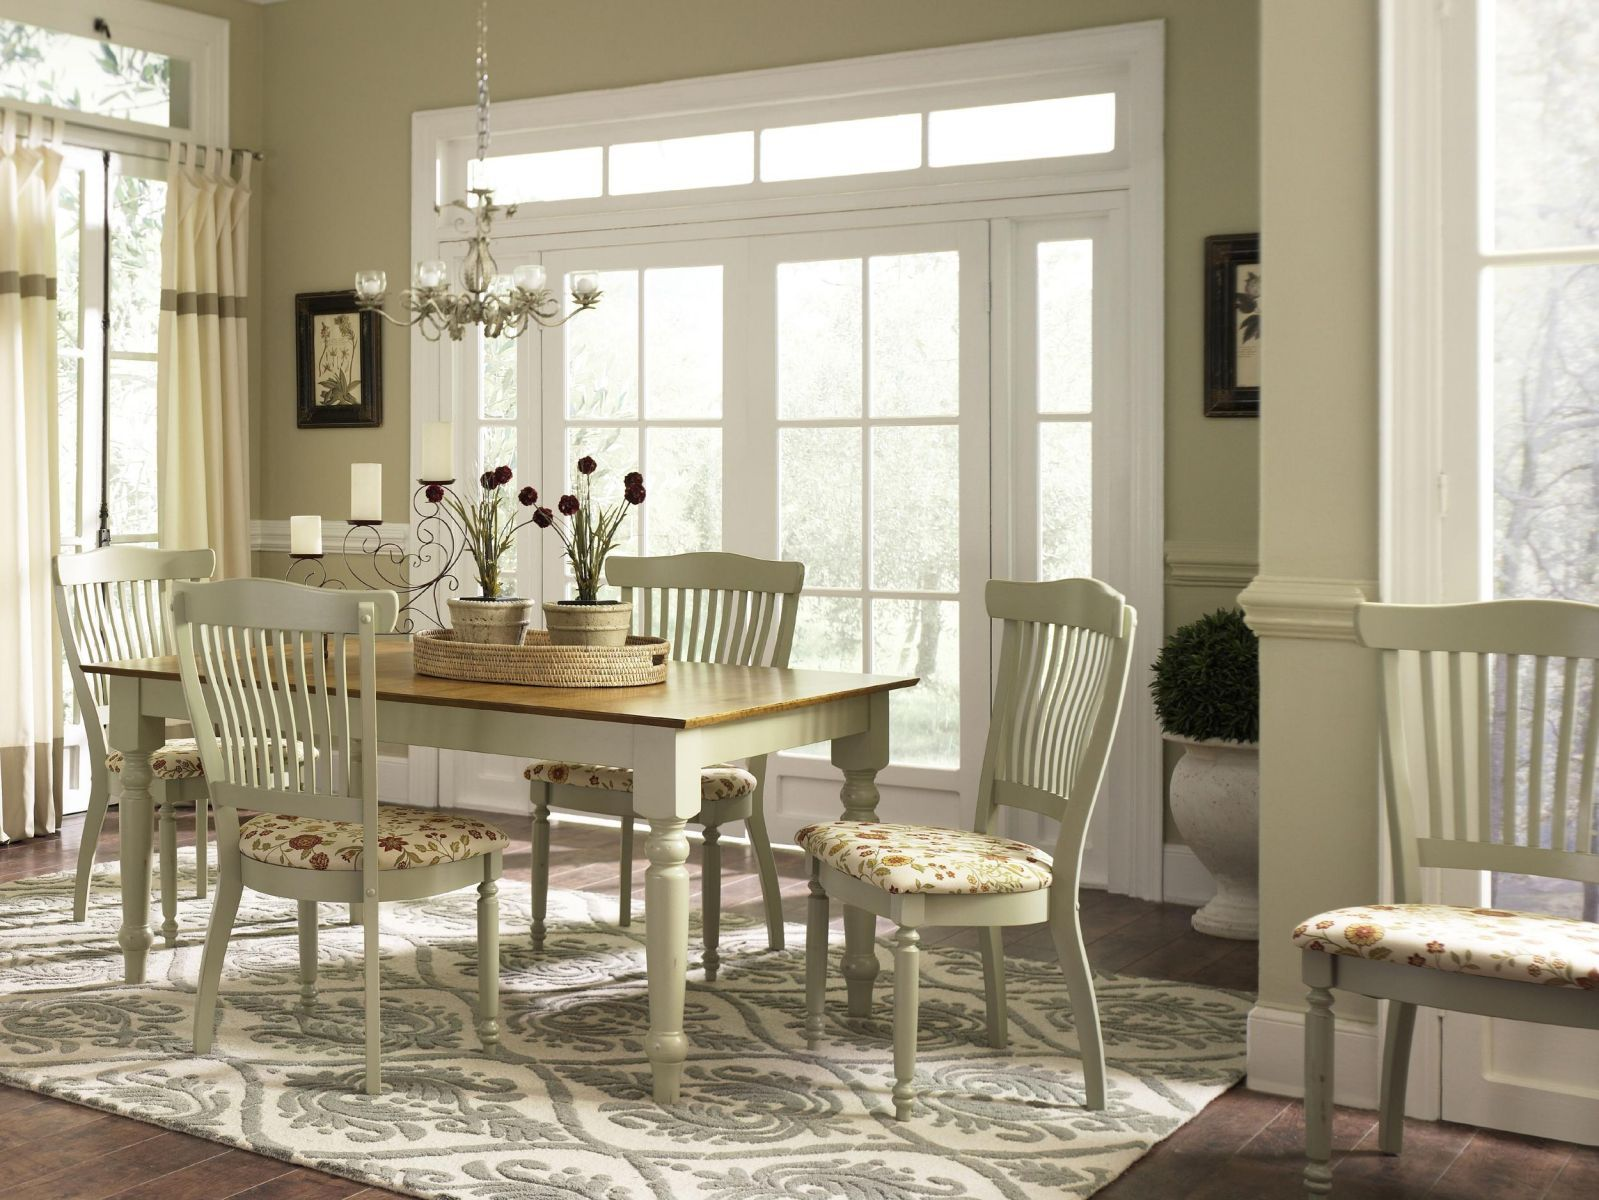 captivating stair living room dining | Captivating Country Dining Room Designs to Inspire You ...